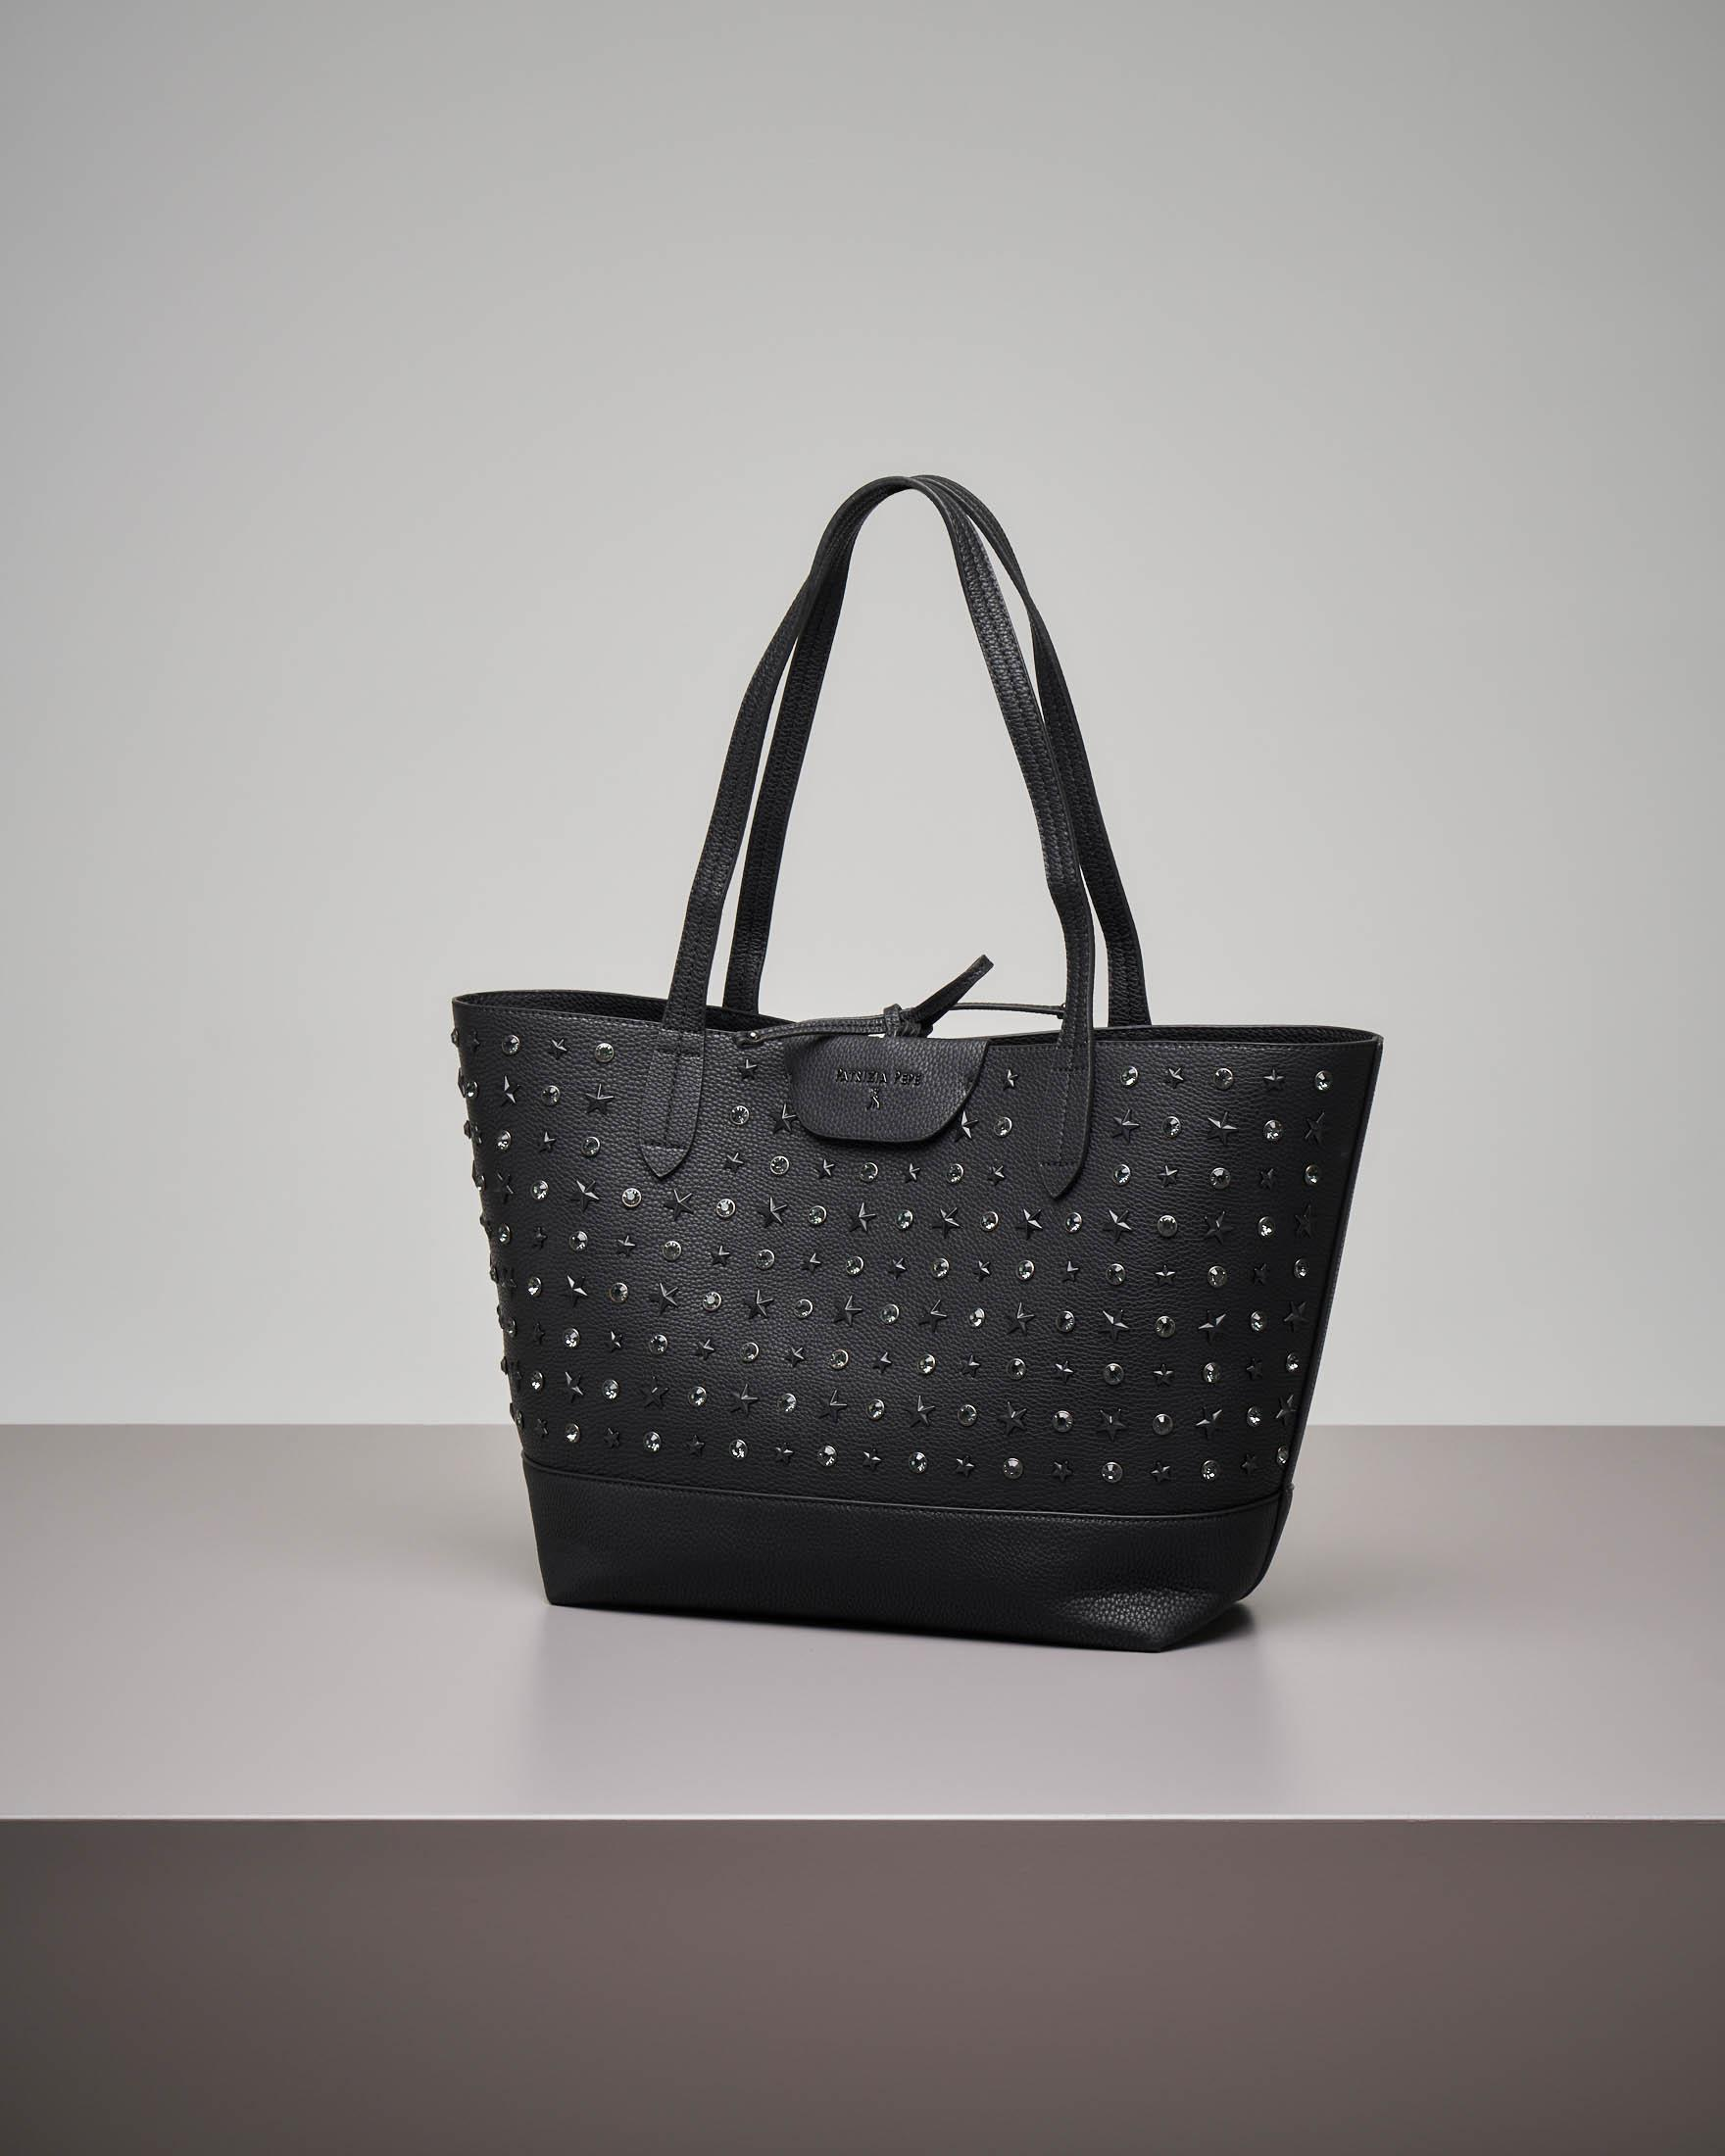 Shopping bag nera con borchie e strass applicati